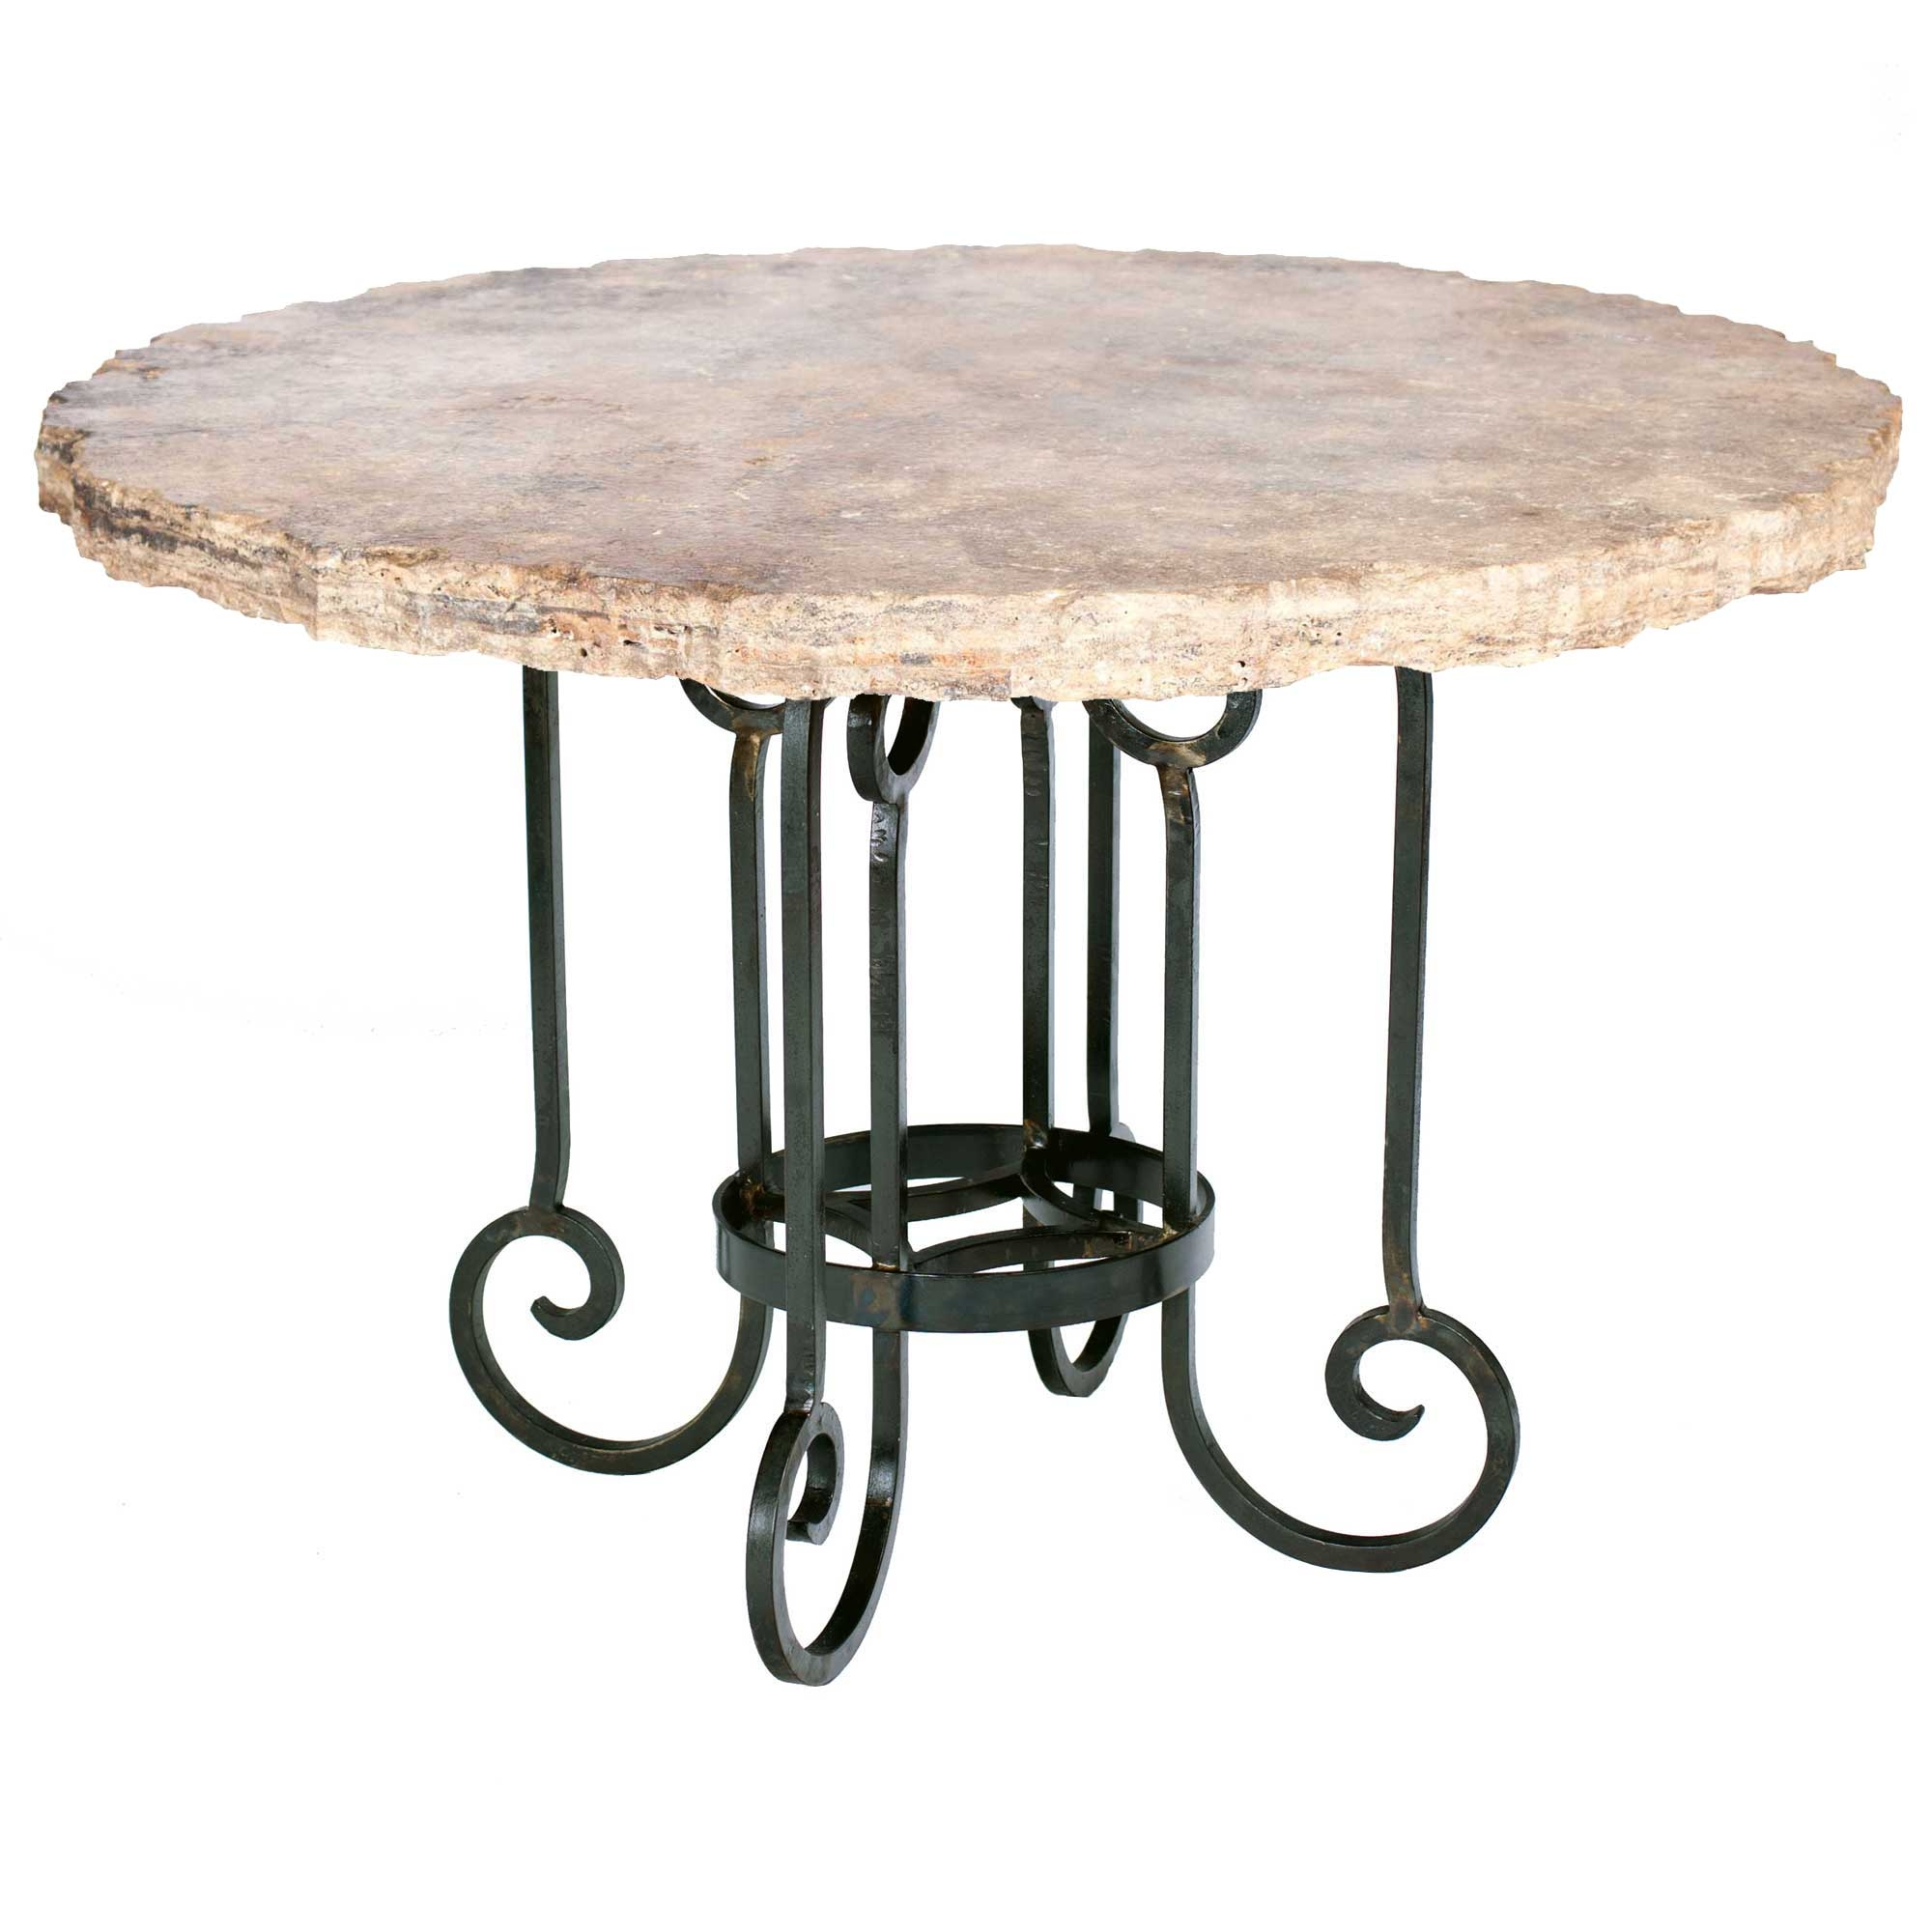 Curled leg iron dining table with 60 round marble top for Round stone top dining table